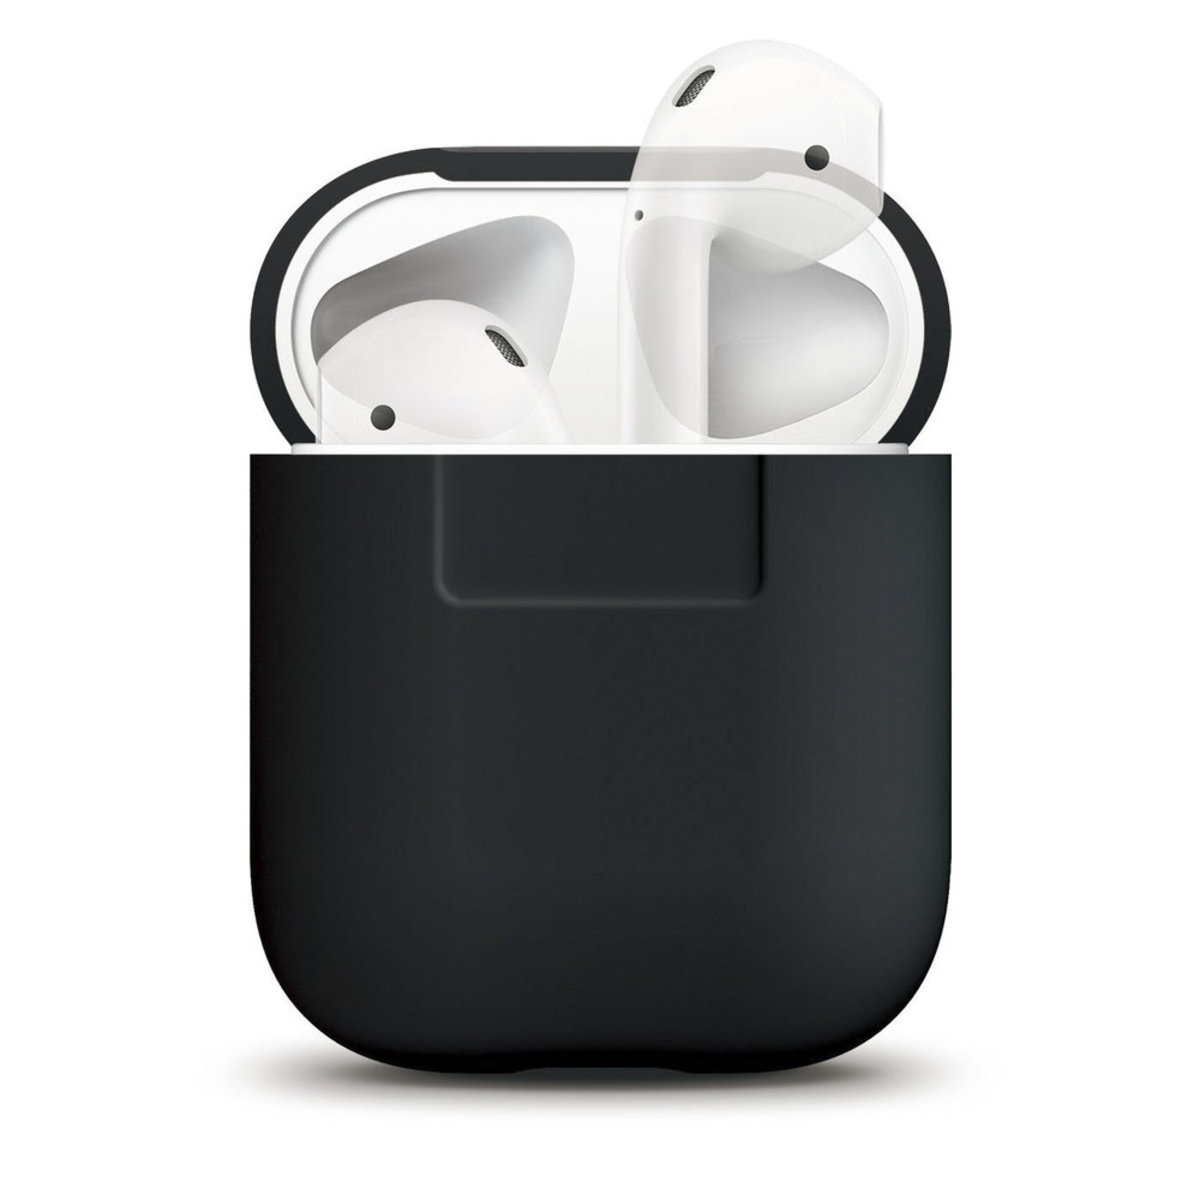 Silicone Cover for Apple AirPods 1/2 Charging Case Front LED Not Visible Supports Wireless Charging